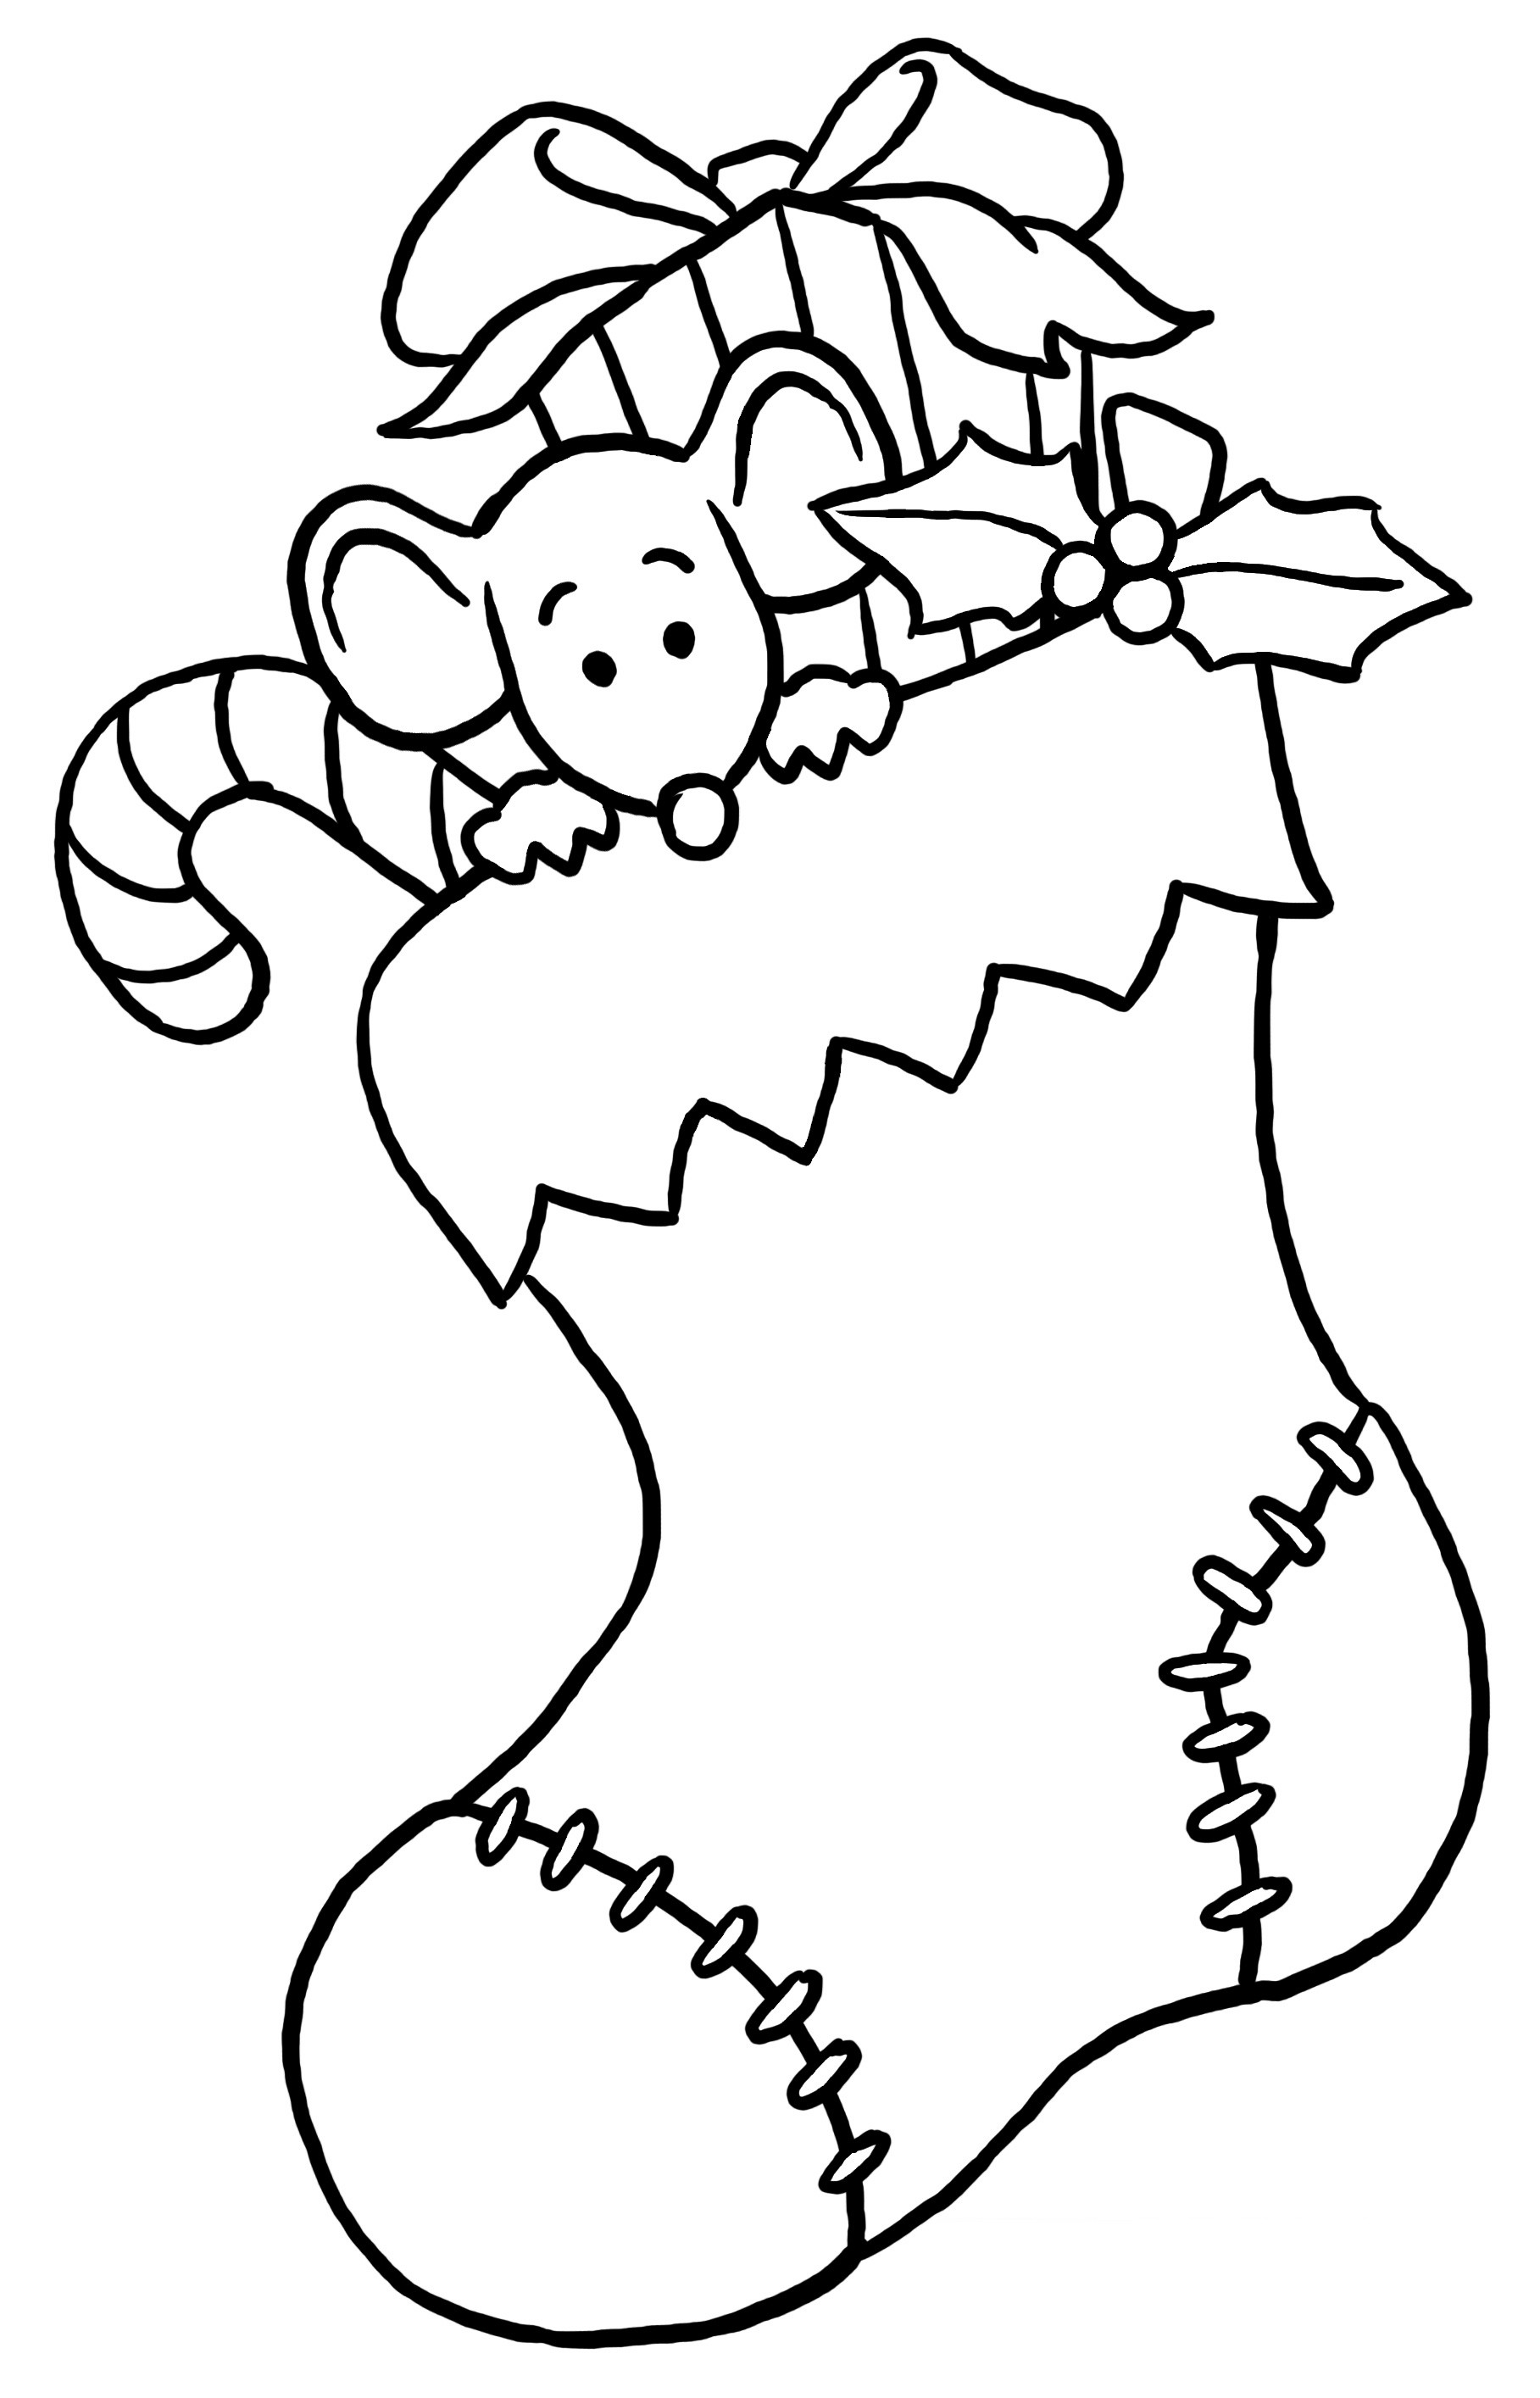 Happy Holidays Coloring Pages At Getdrawings Free Download